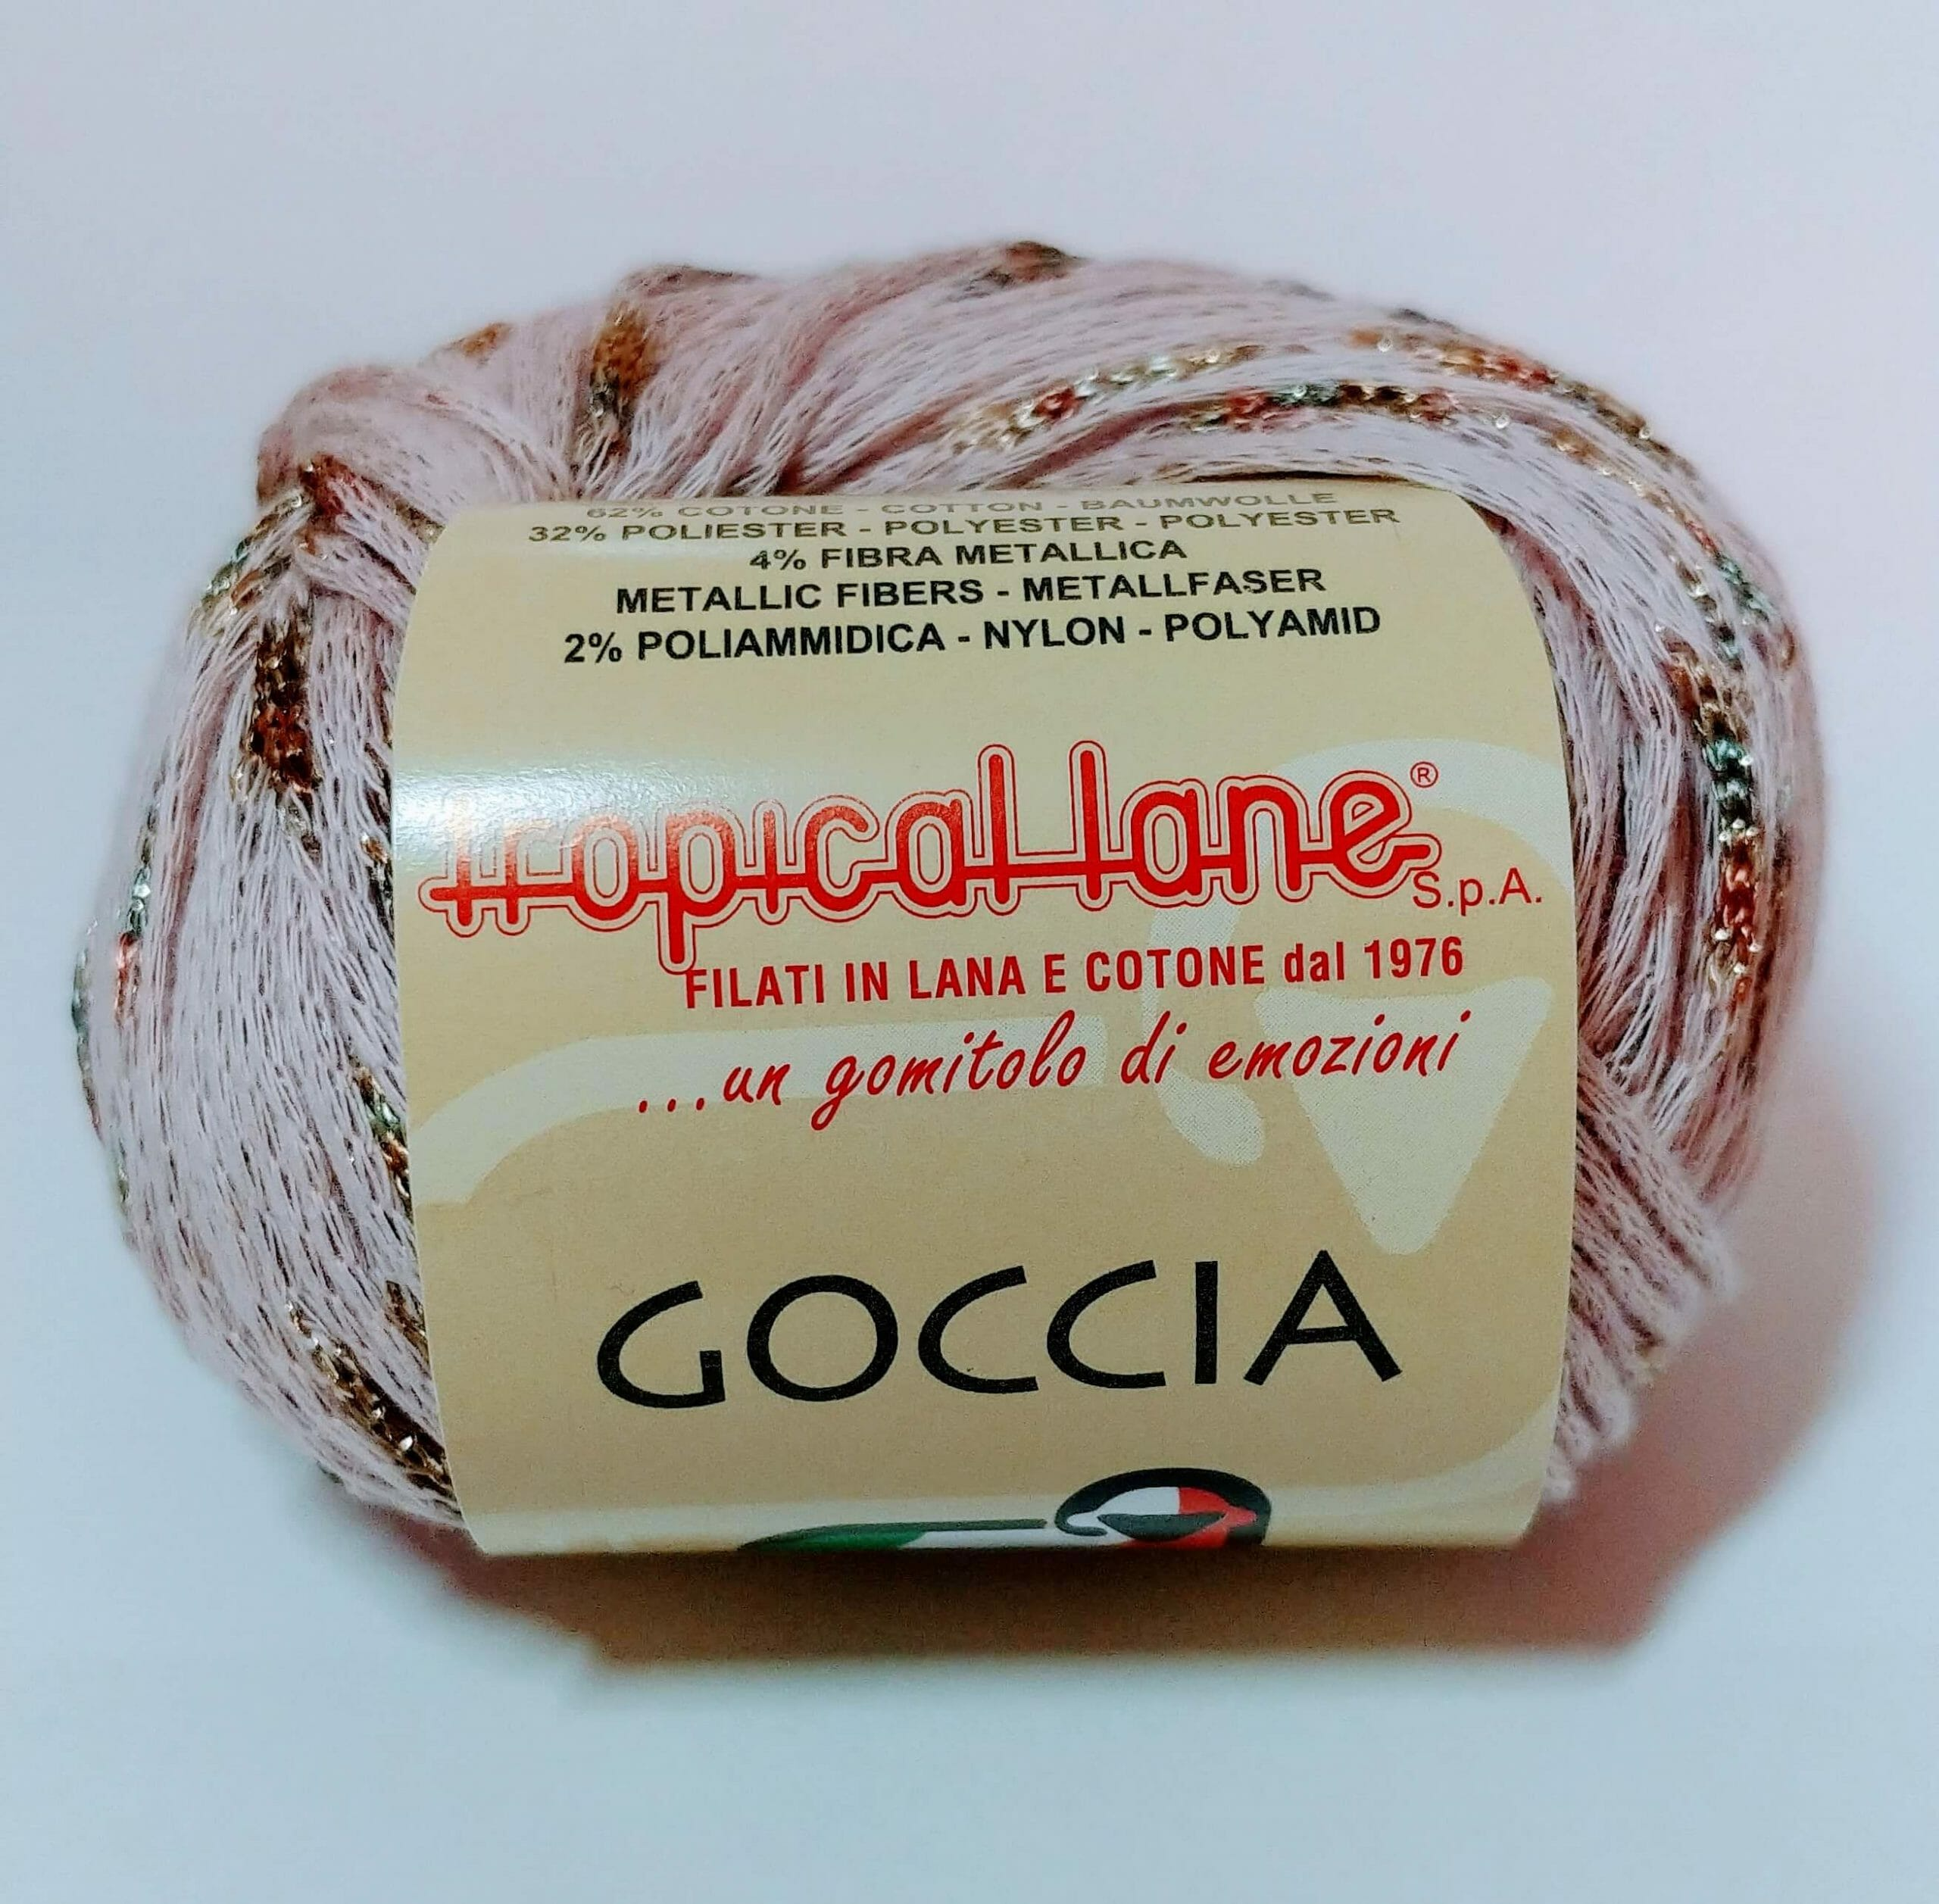 Tropical Lane - Goccia